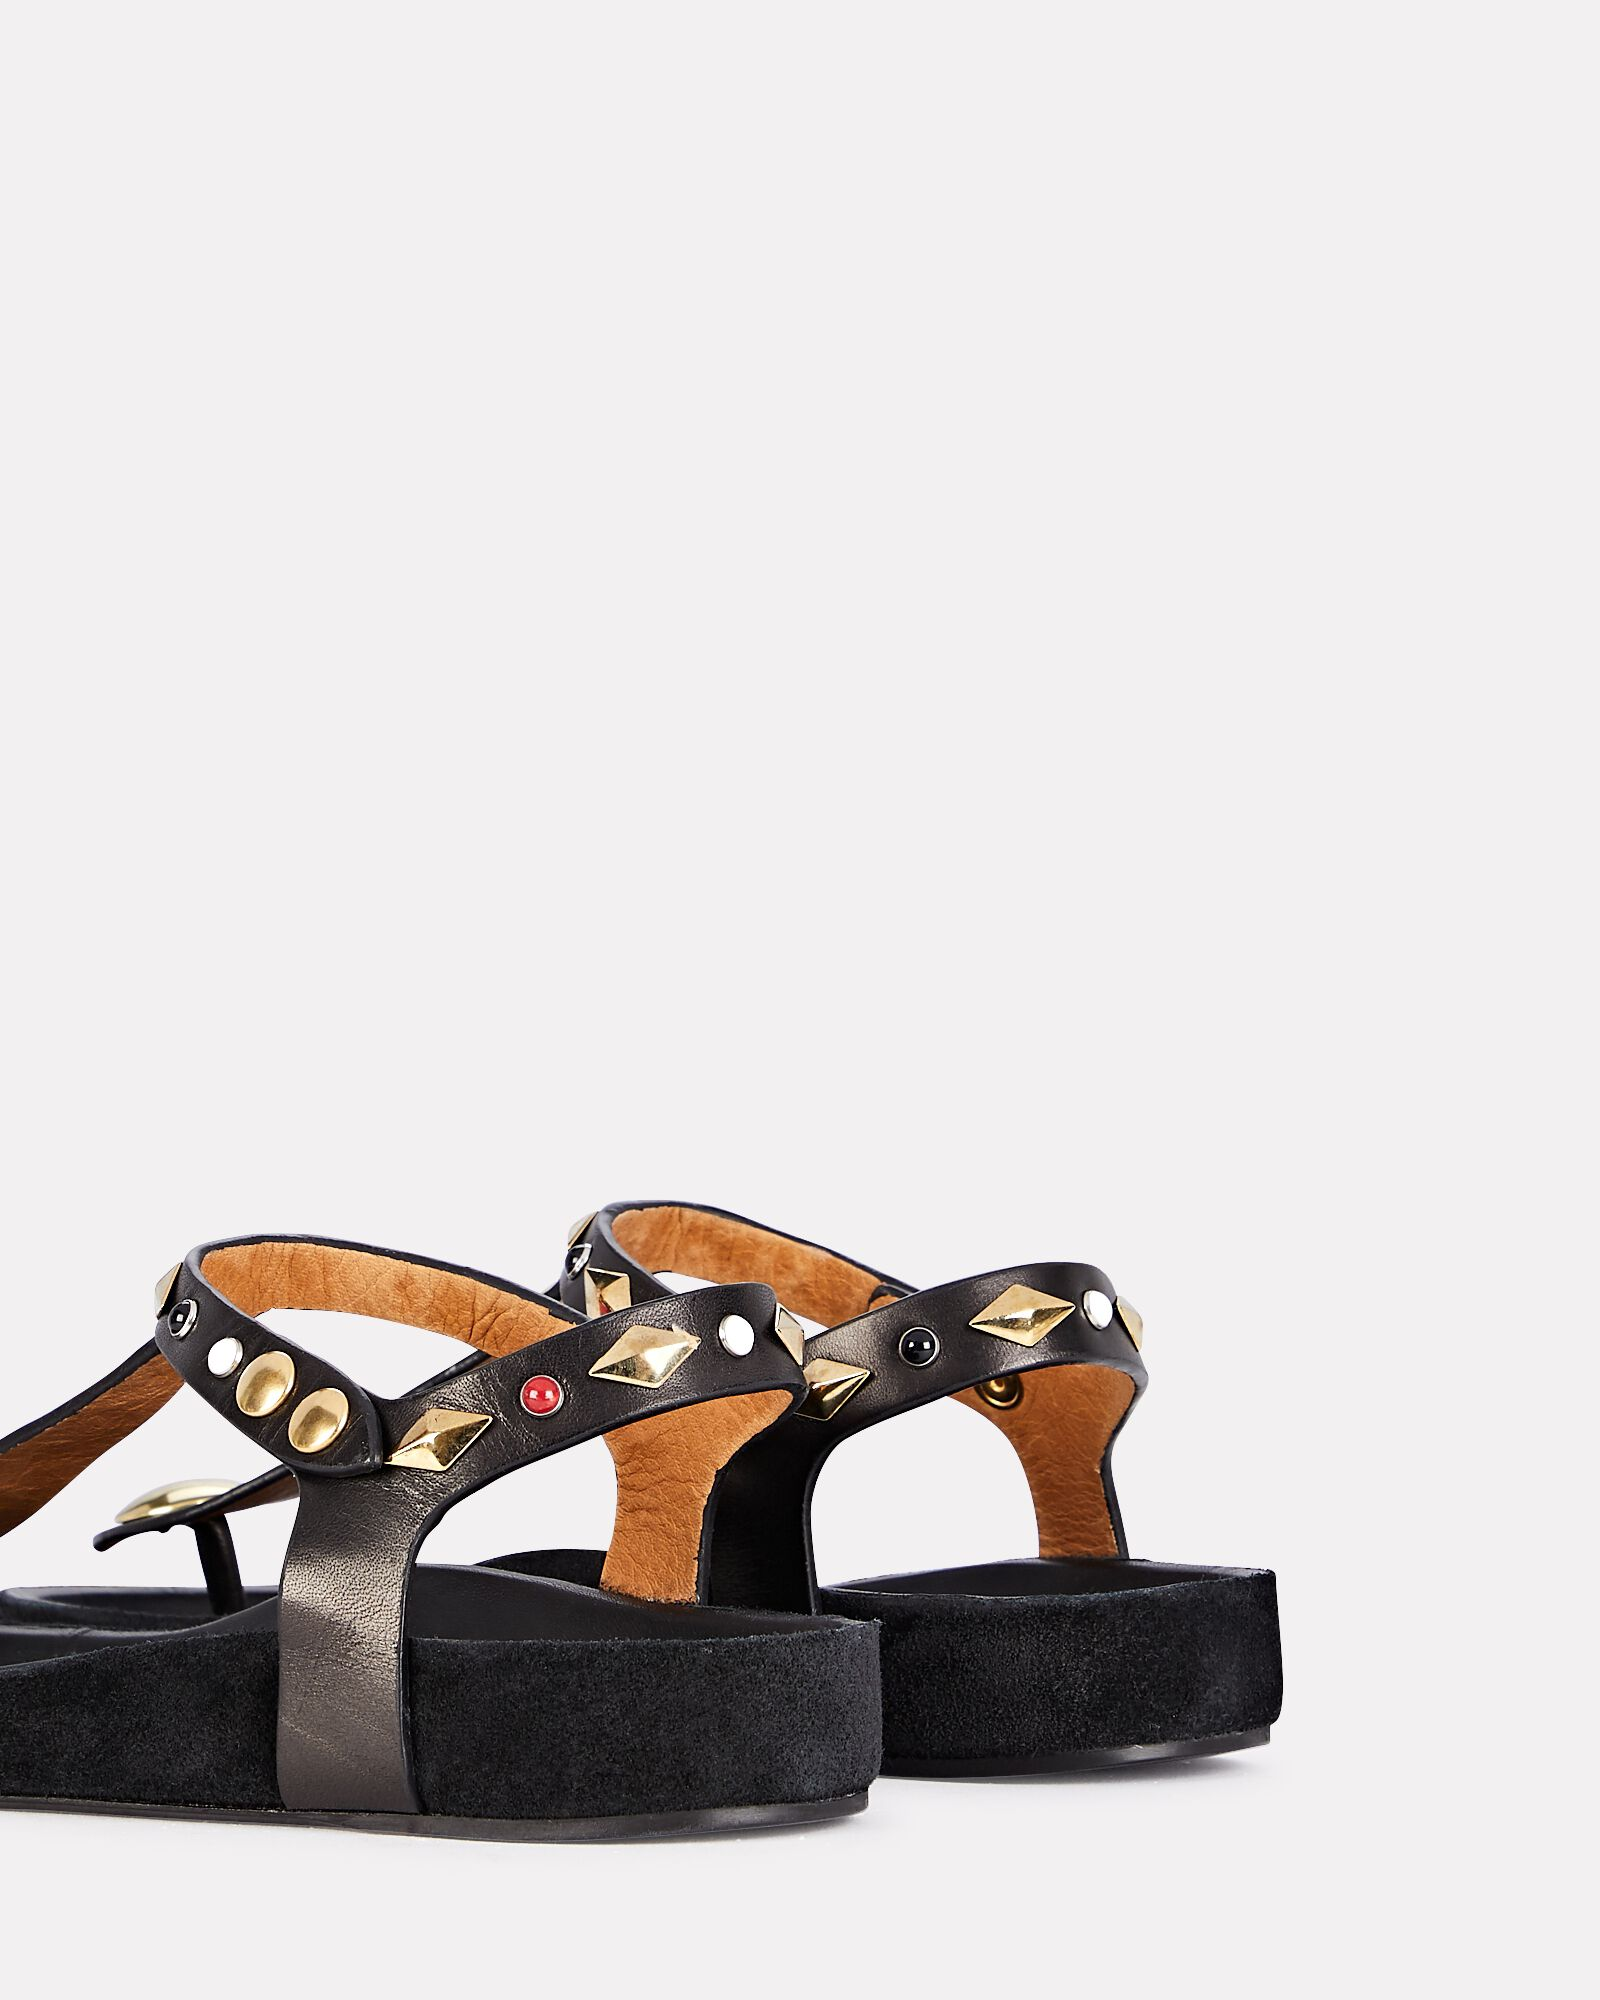 Enore Studded Leather Thong Sandals, BLACK, hi-res